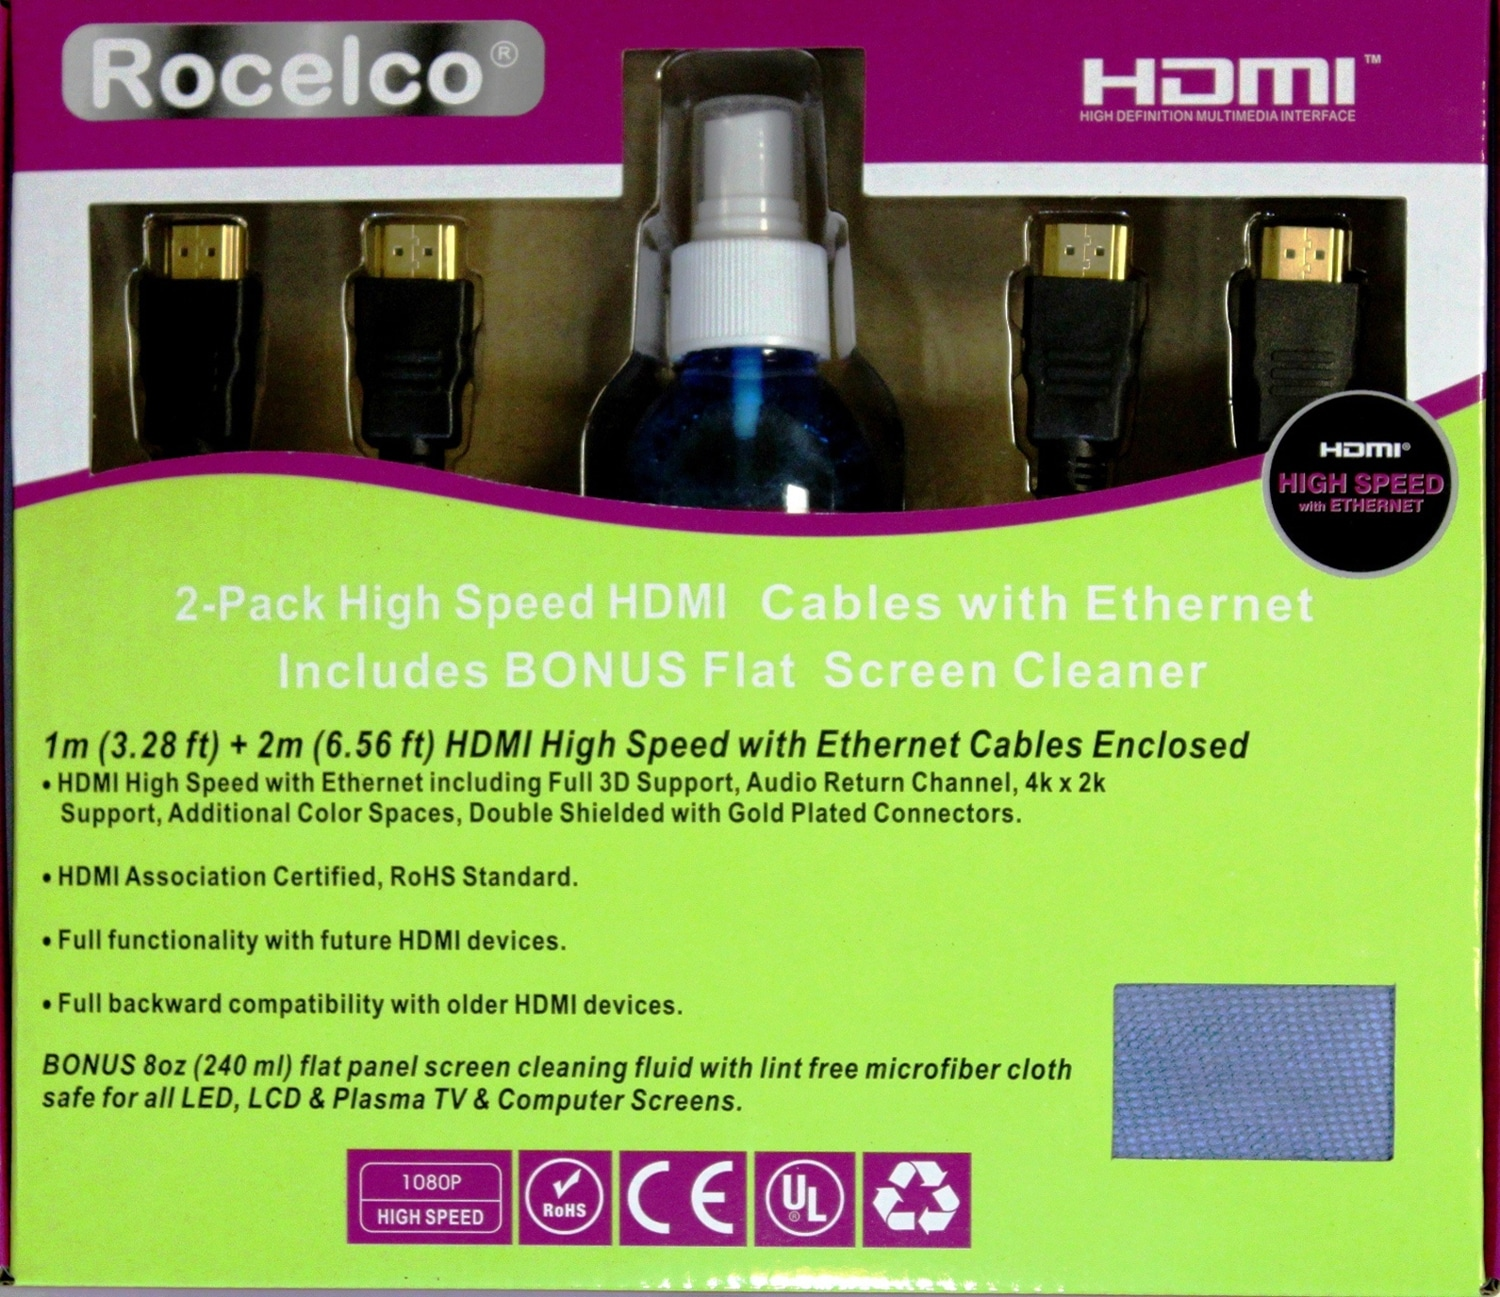 Rocelco 2-Pack HDMI Starter Kit with BONUS Flat Screen Cleaner